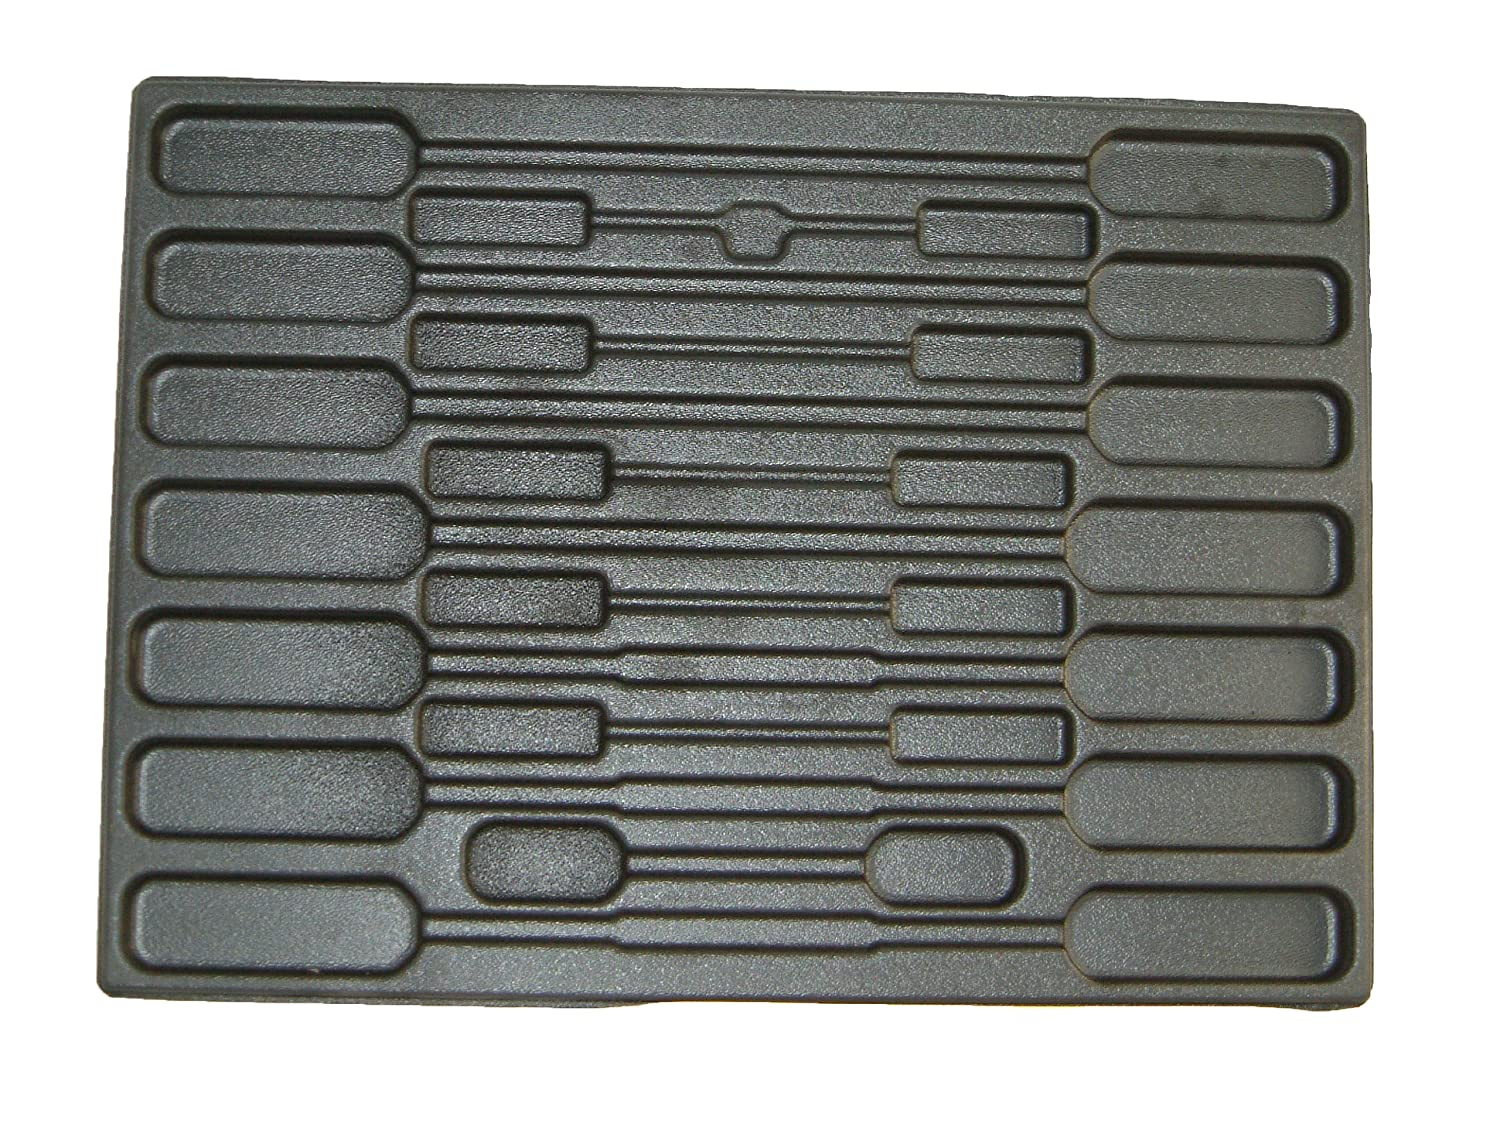 Protoco 3017 Screwdriver Tray Holds 26 Screwdrivers, 16-Inch x 22-Inch x 1/4-Inch